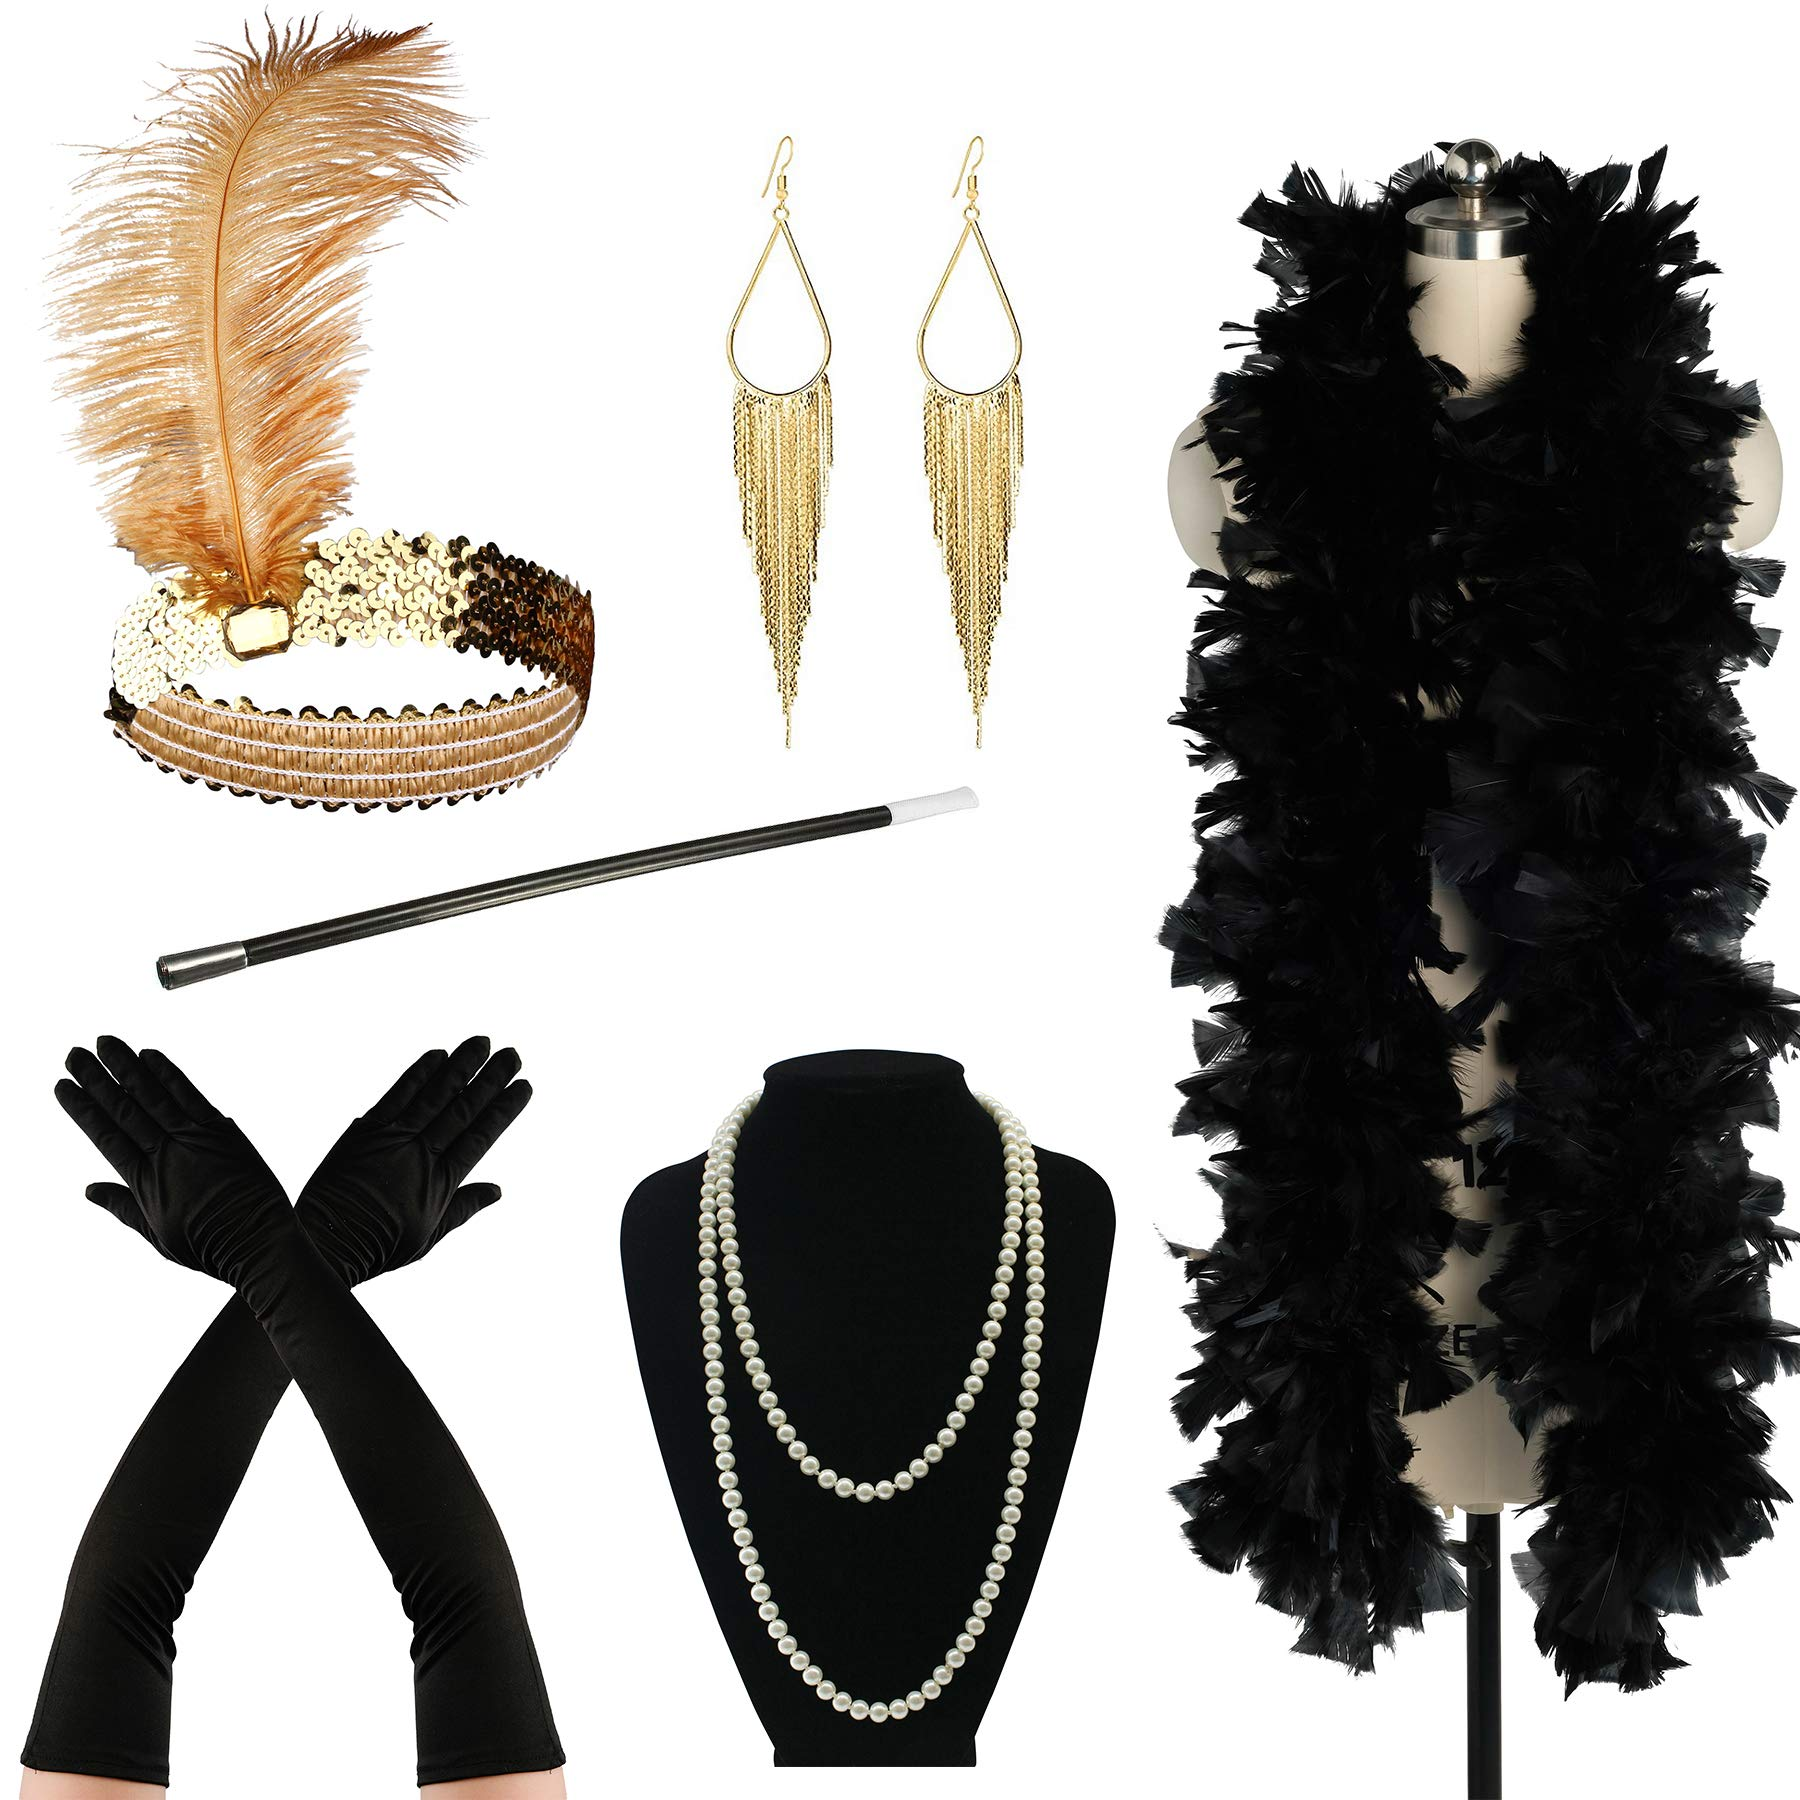 Zivyes 1920s Accessories Flapper Costume for Women Headpiece Cigarette Necklace Gloves (8A)